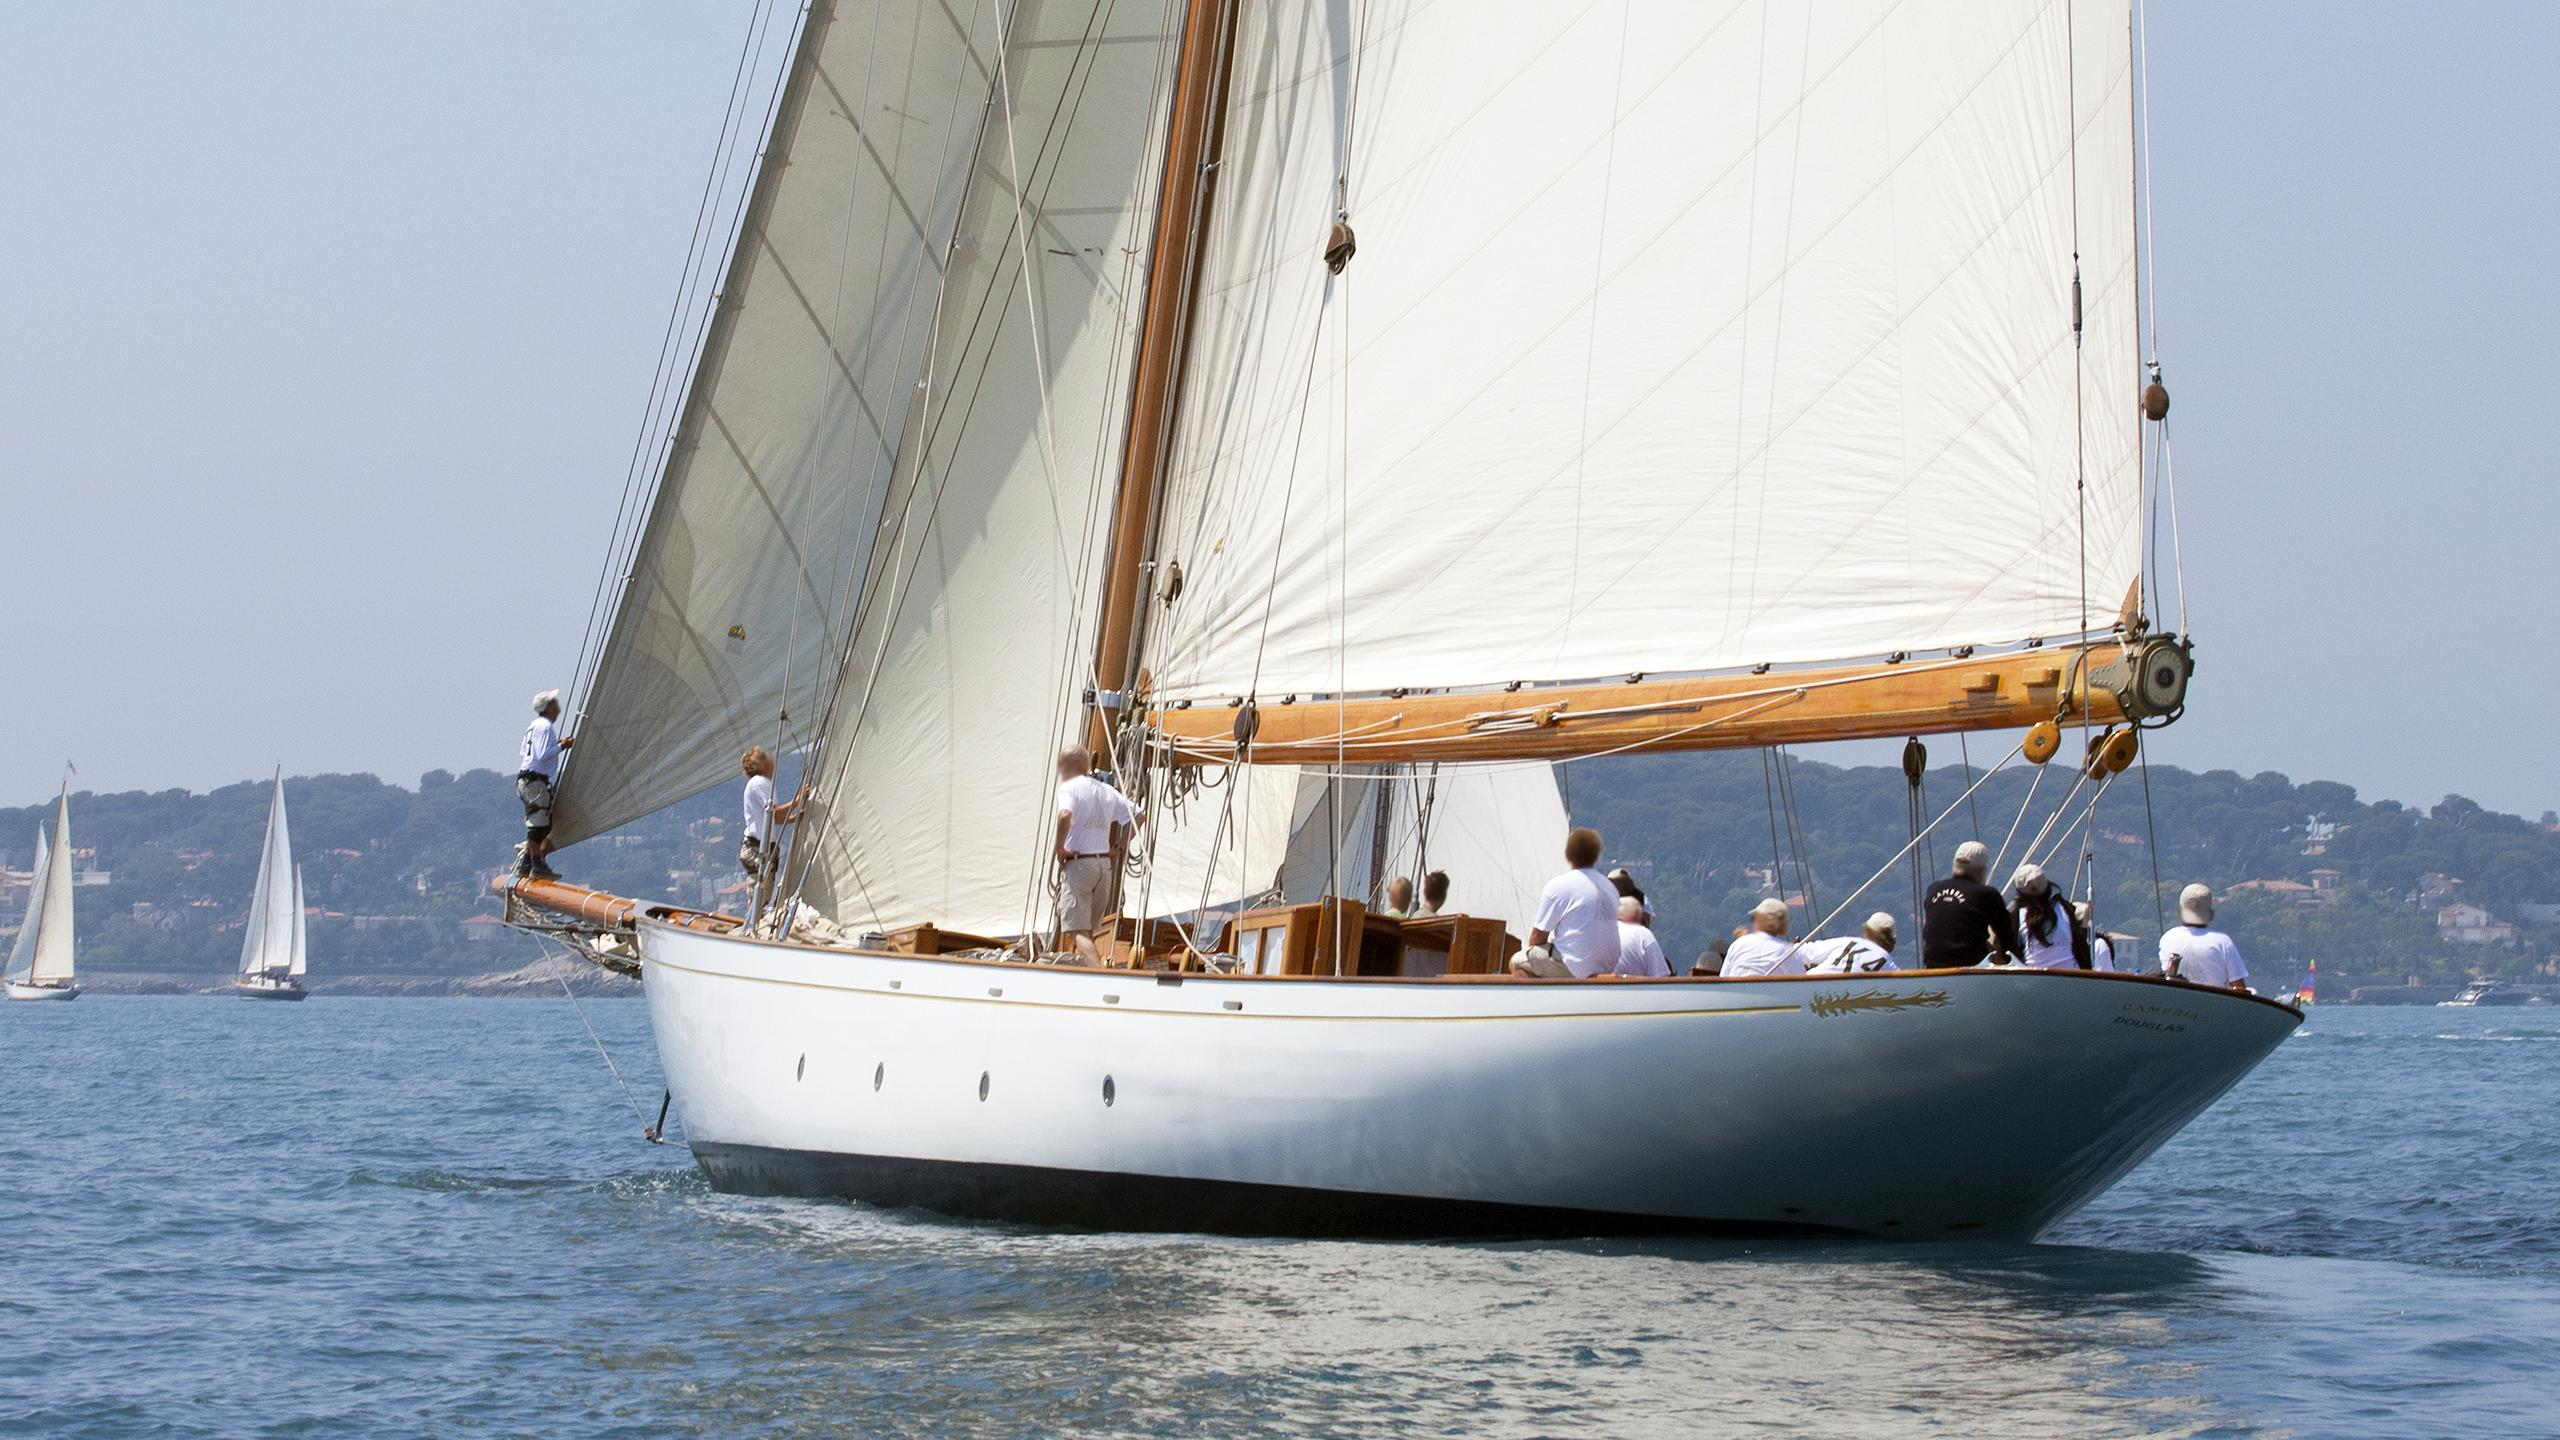 cambria-sailing-yacht-fife-1928-running-stern